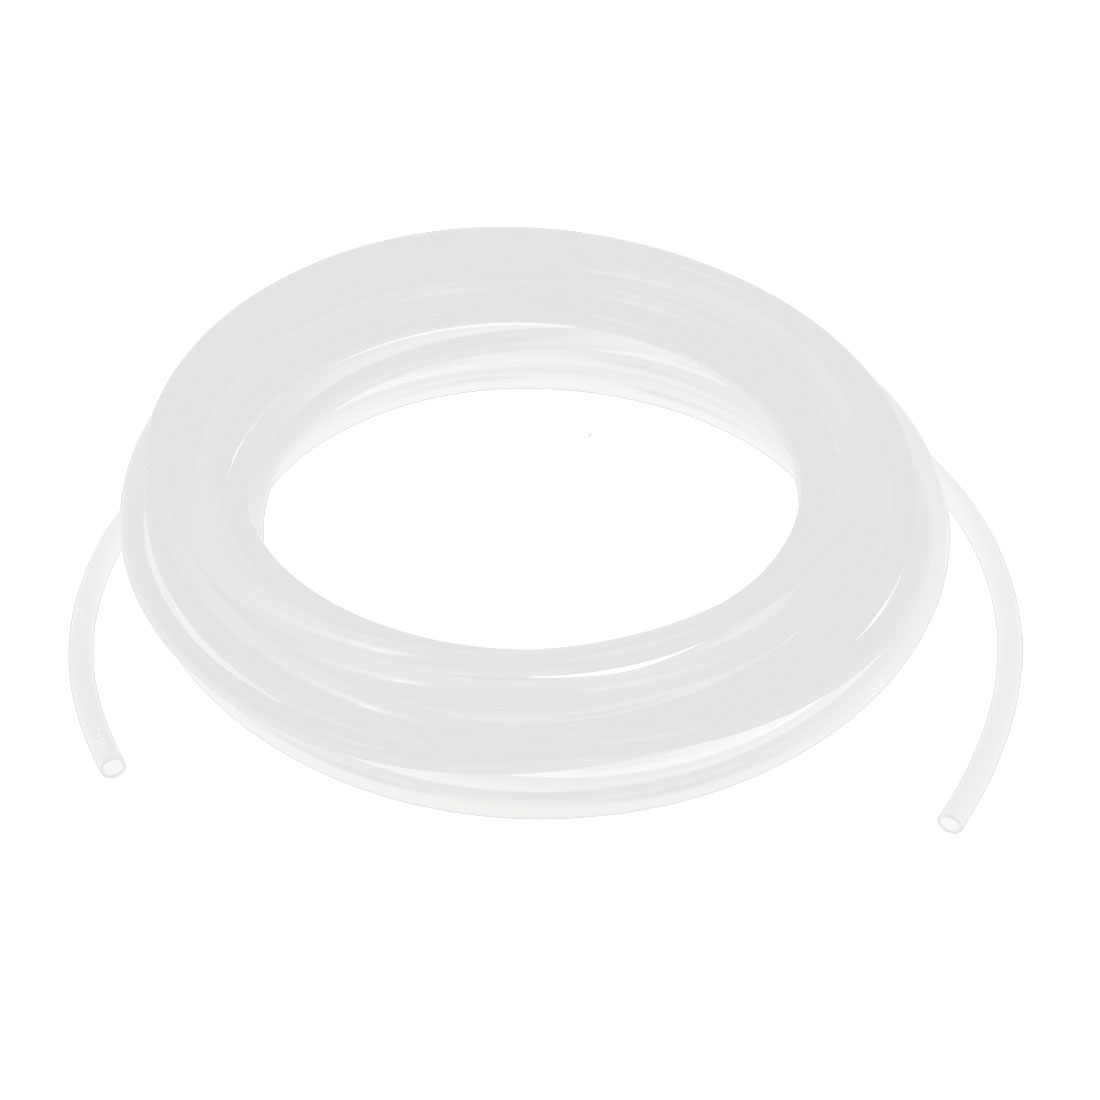 7.5 Meter 6mm x 4mm White Polyurethane Flexible Air Tube PU Tubing Pneumatic Pipe Hose